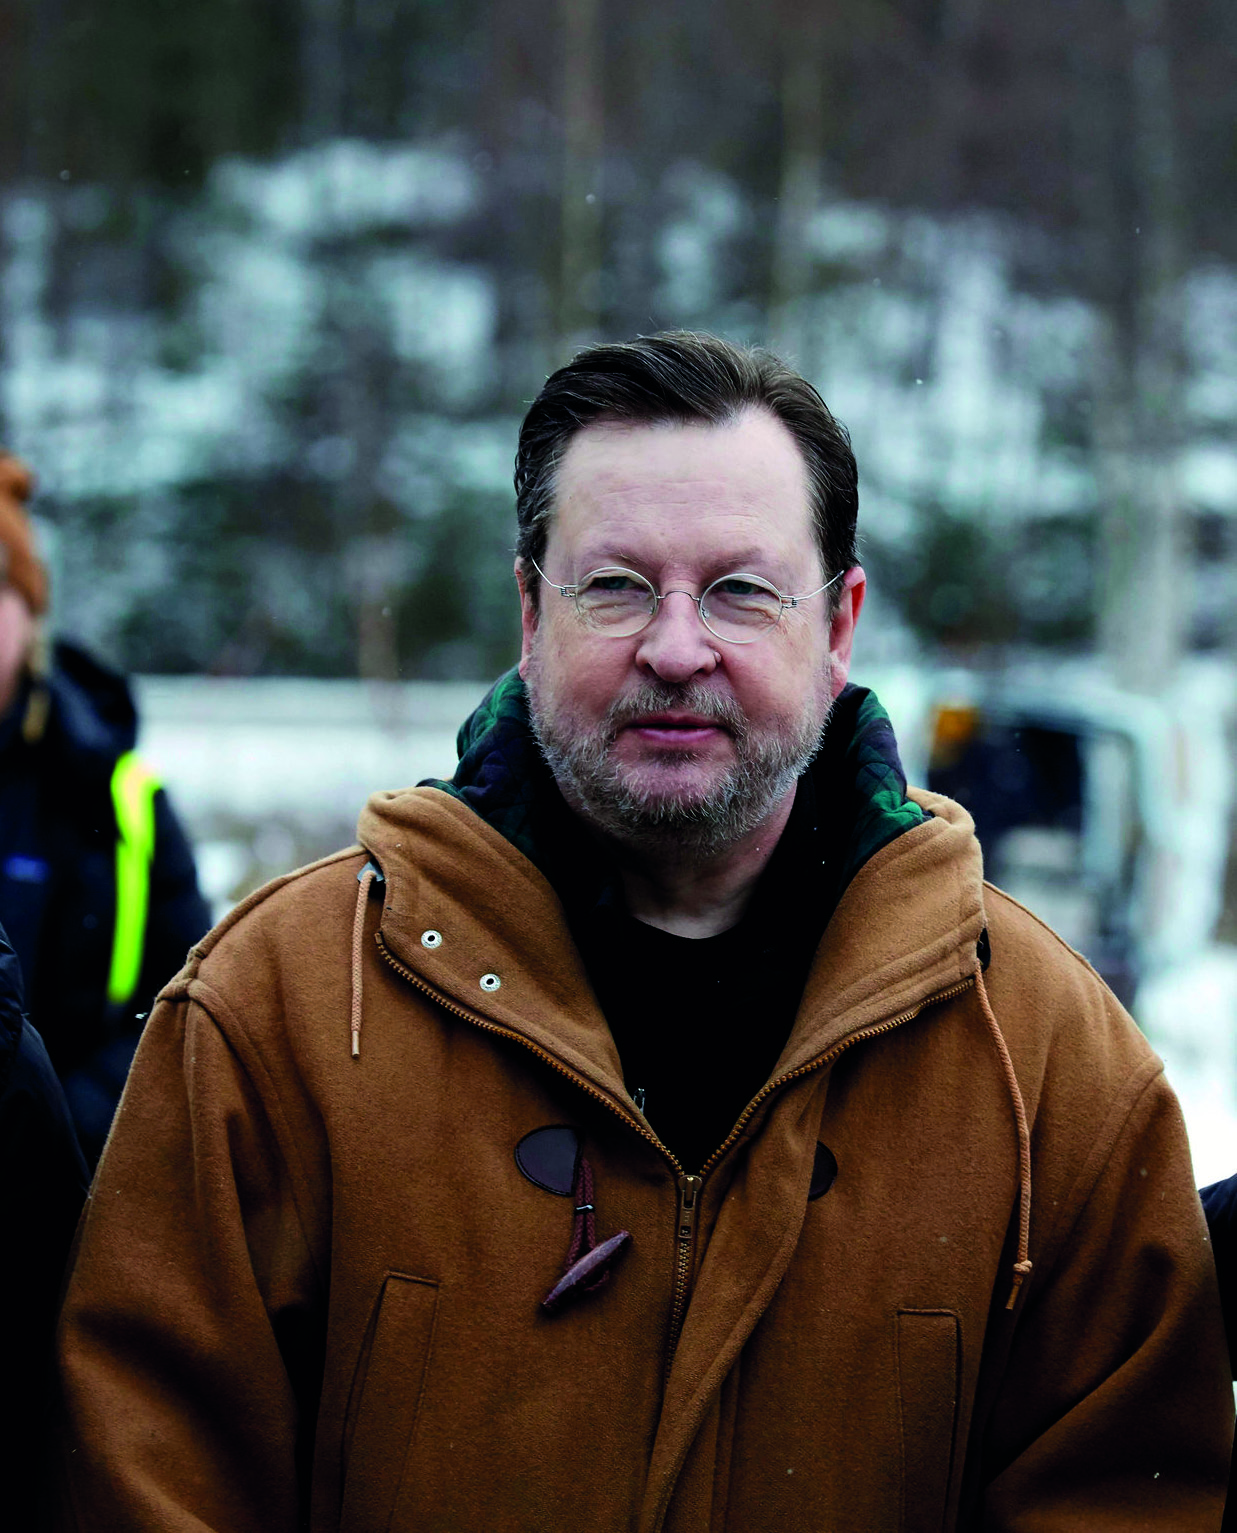 Lars von Trier at the press conference for 'The House That Jack Built' in Dalsland, Sweden in February.